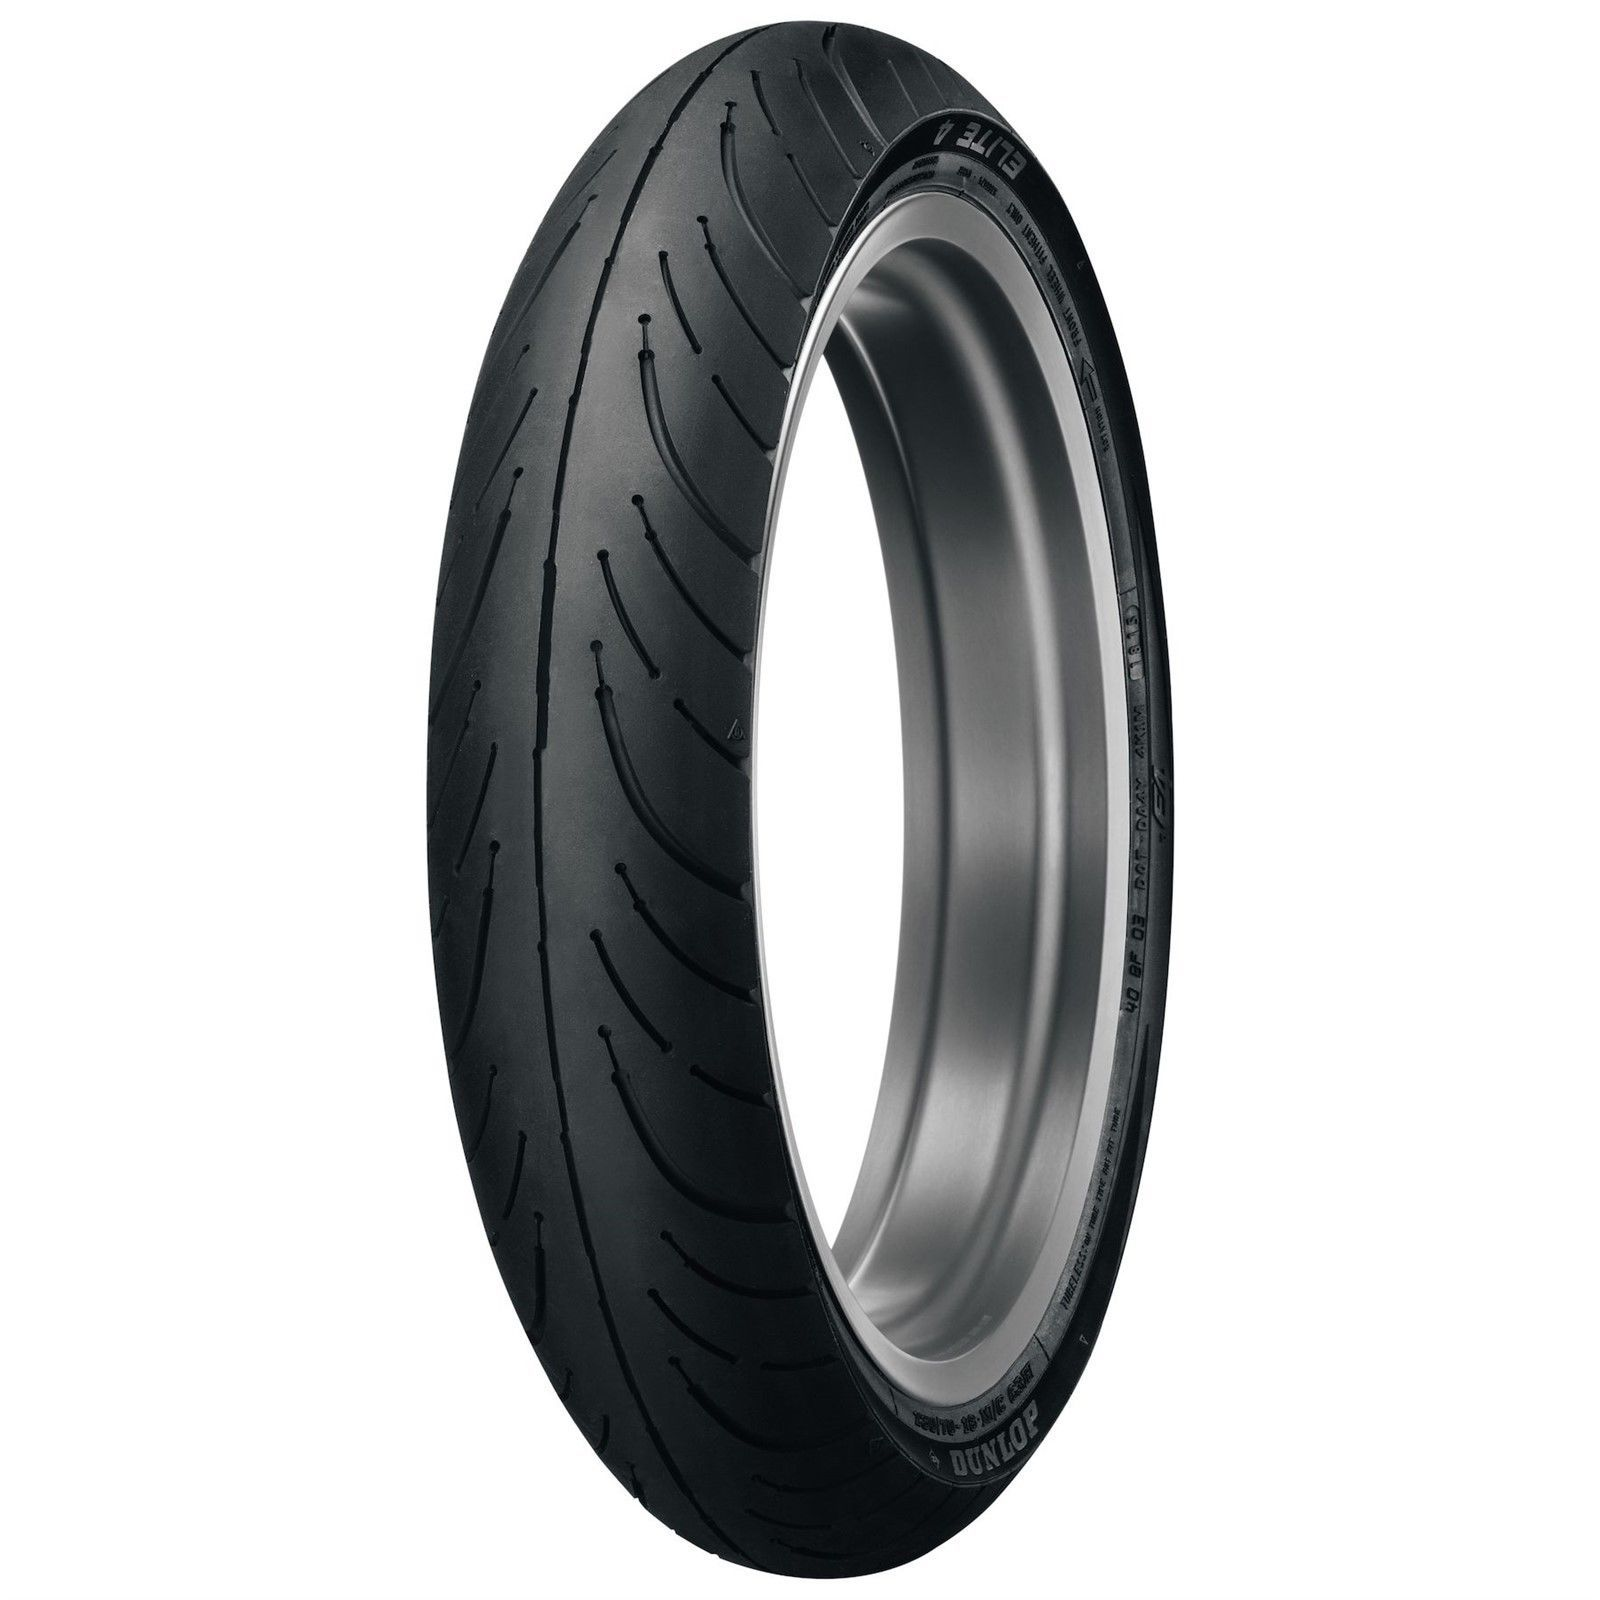 New Dunlop Elite 4 110/90-18 Bias Front Motorcycle Tire 61H High Mileage